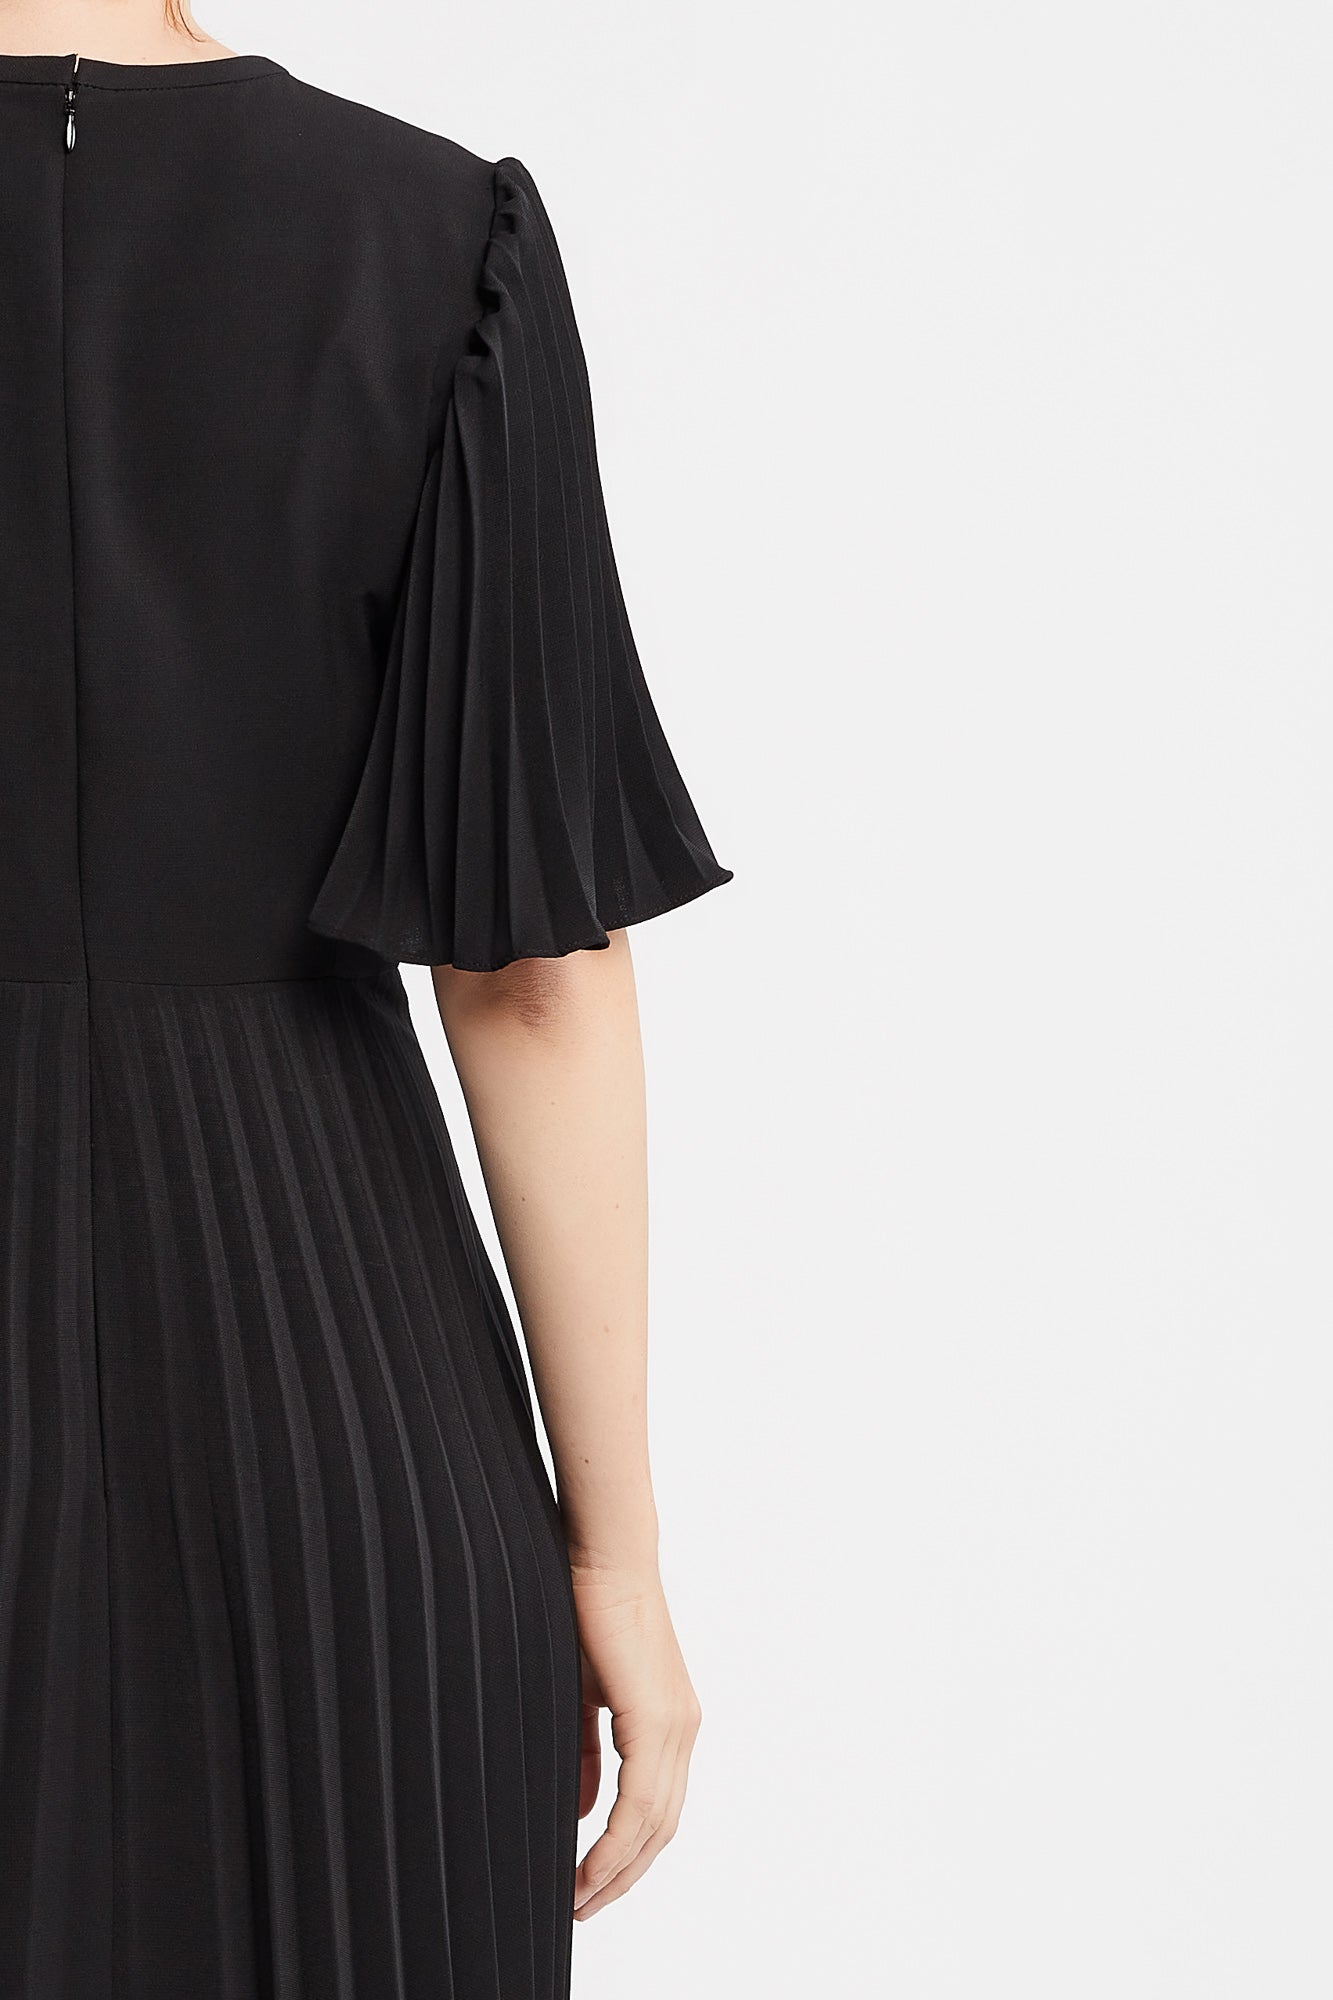 Cannelle Dress in Black with Flared Pleated Sleeves and Skirt